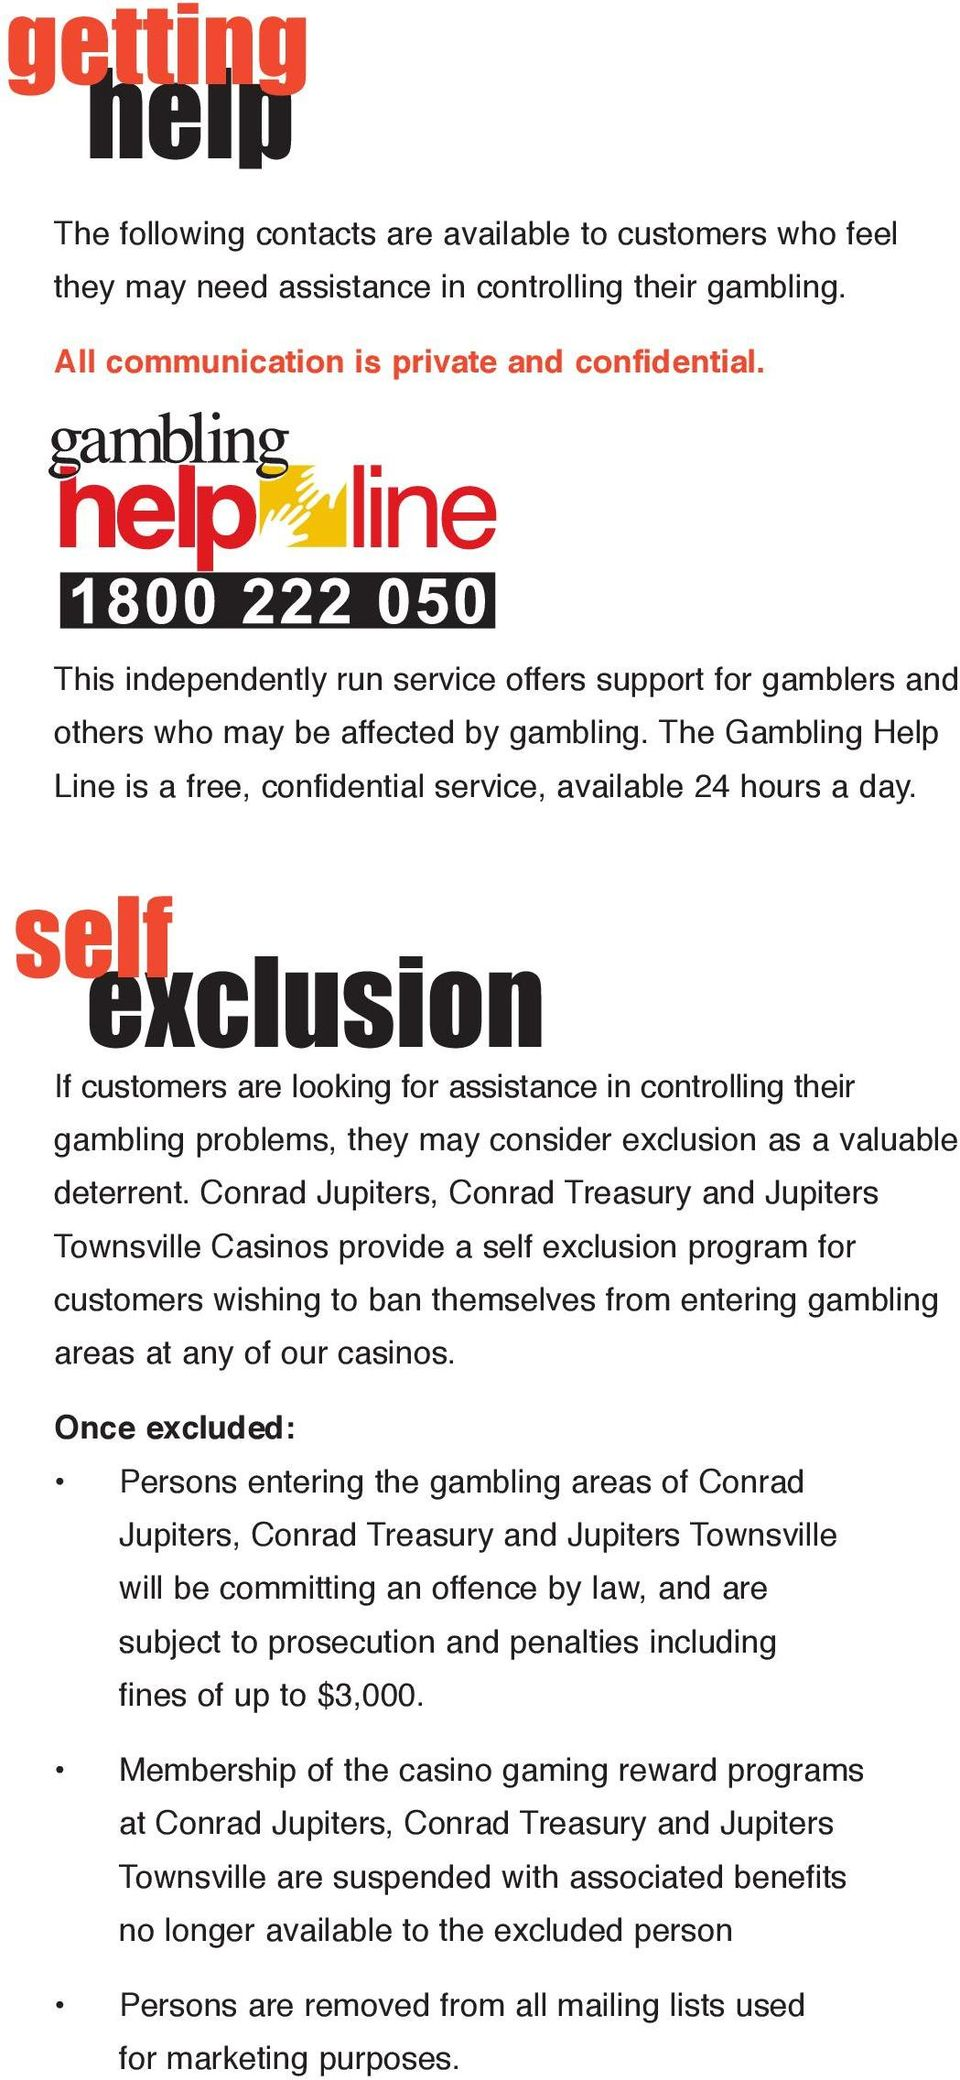 self exclusion If customers are looking for assistance in controlling their gambling problems, they may consider exclusion as a valuable deterrent.